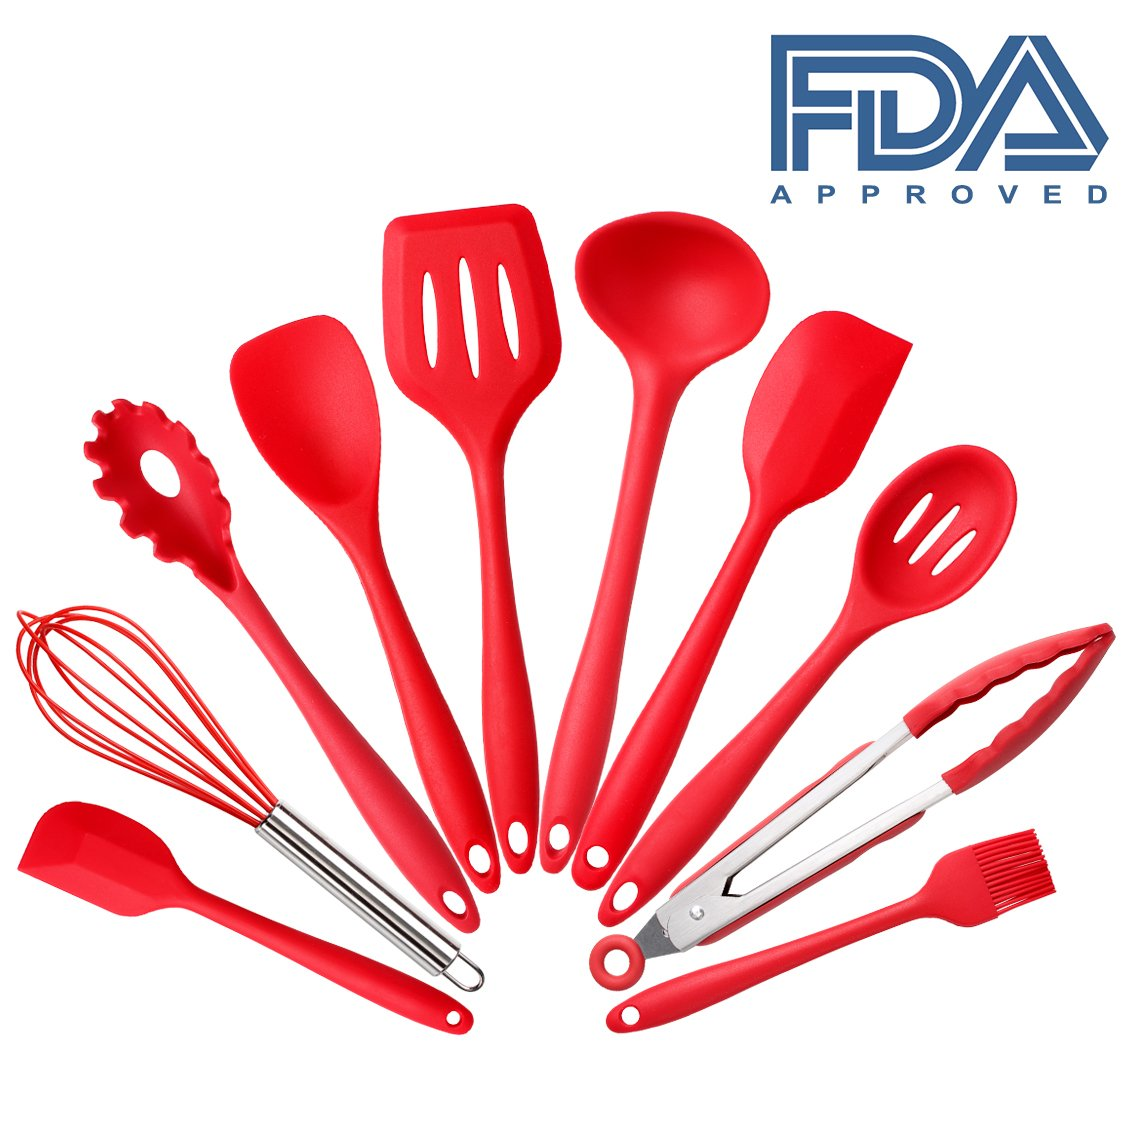 10-piece Silicone Kitchen Cooking Utensils